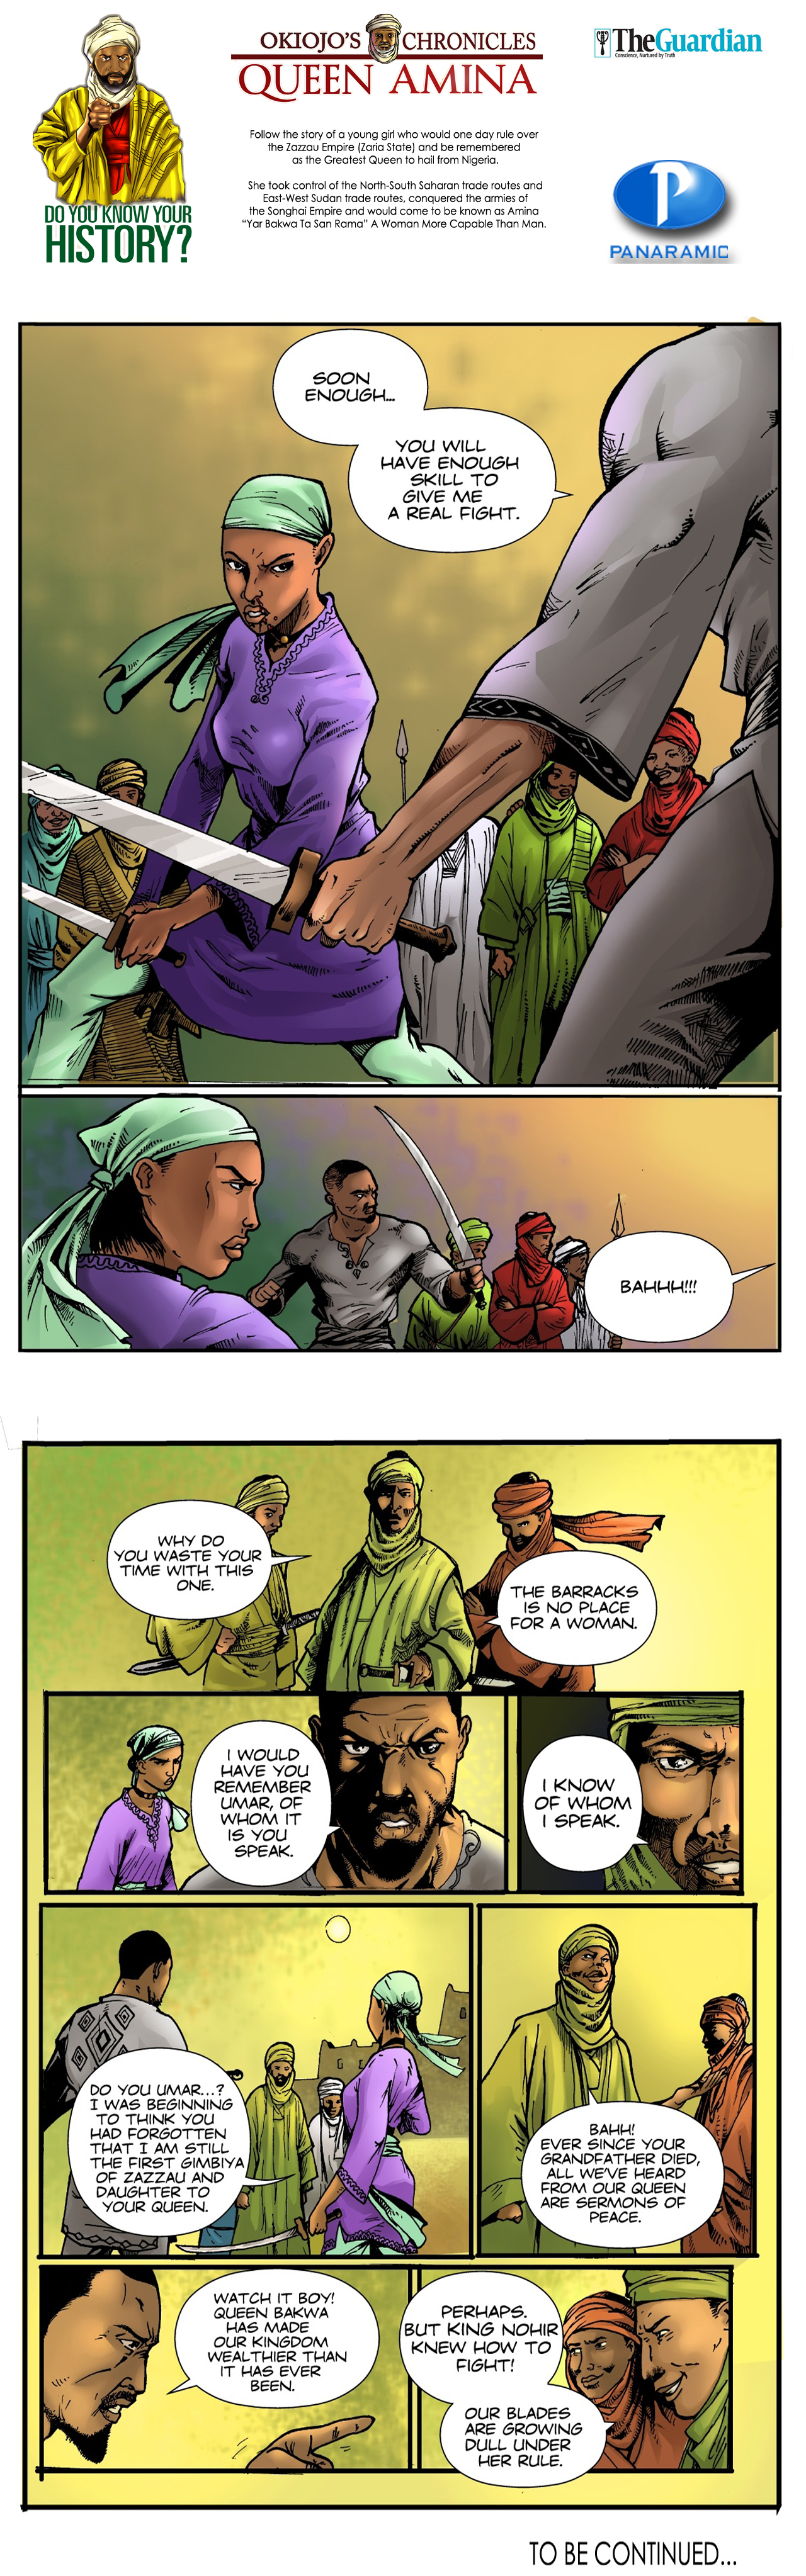 Queen Amina (Part 1) - 8